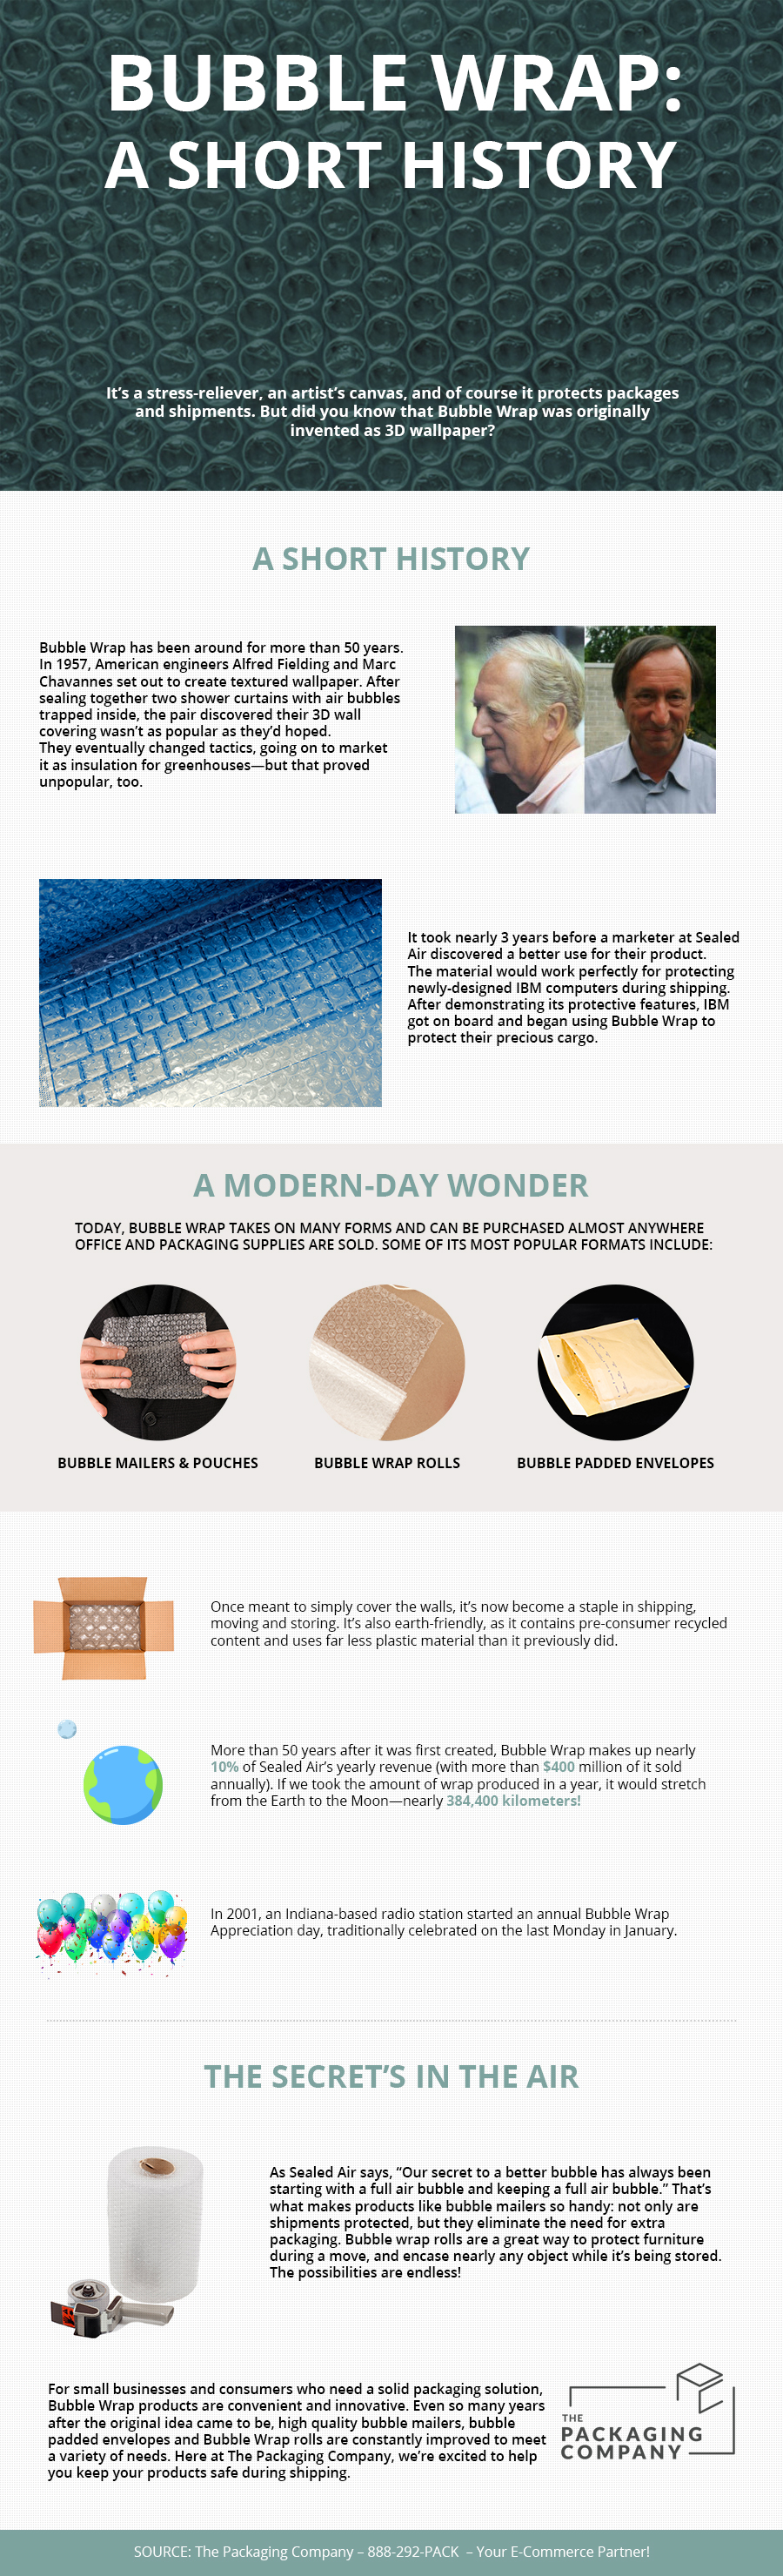 bubble wrap infographic